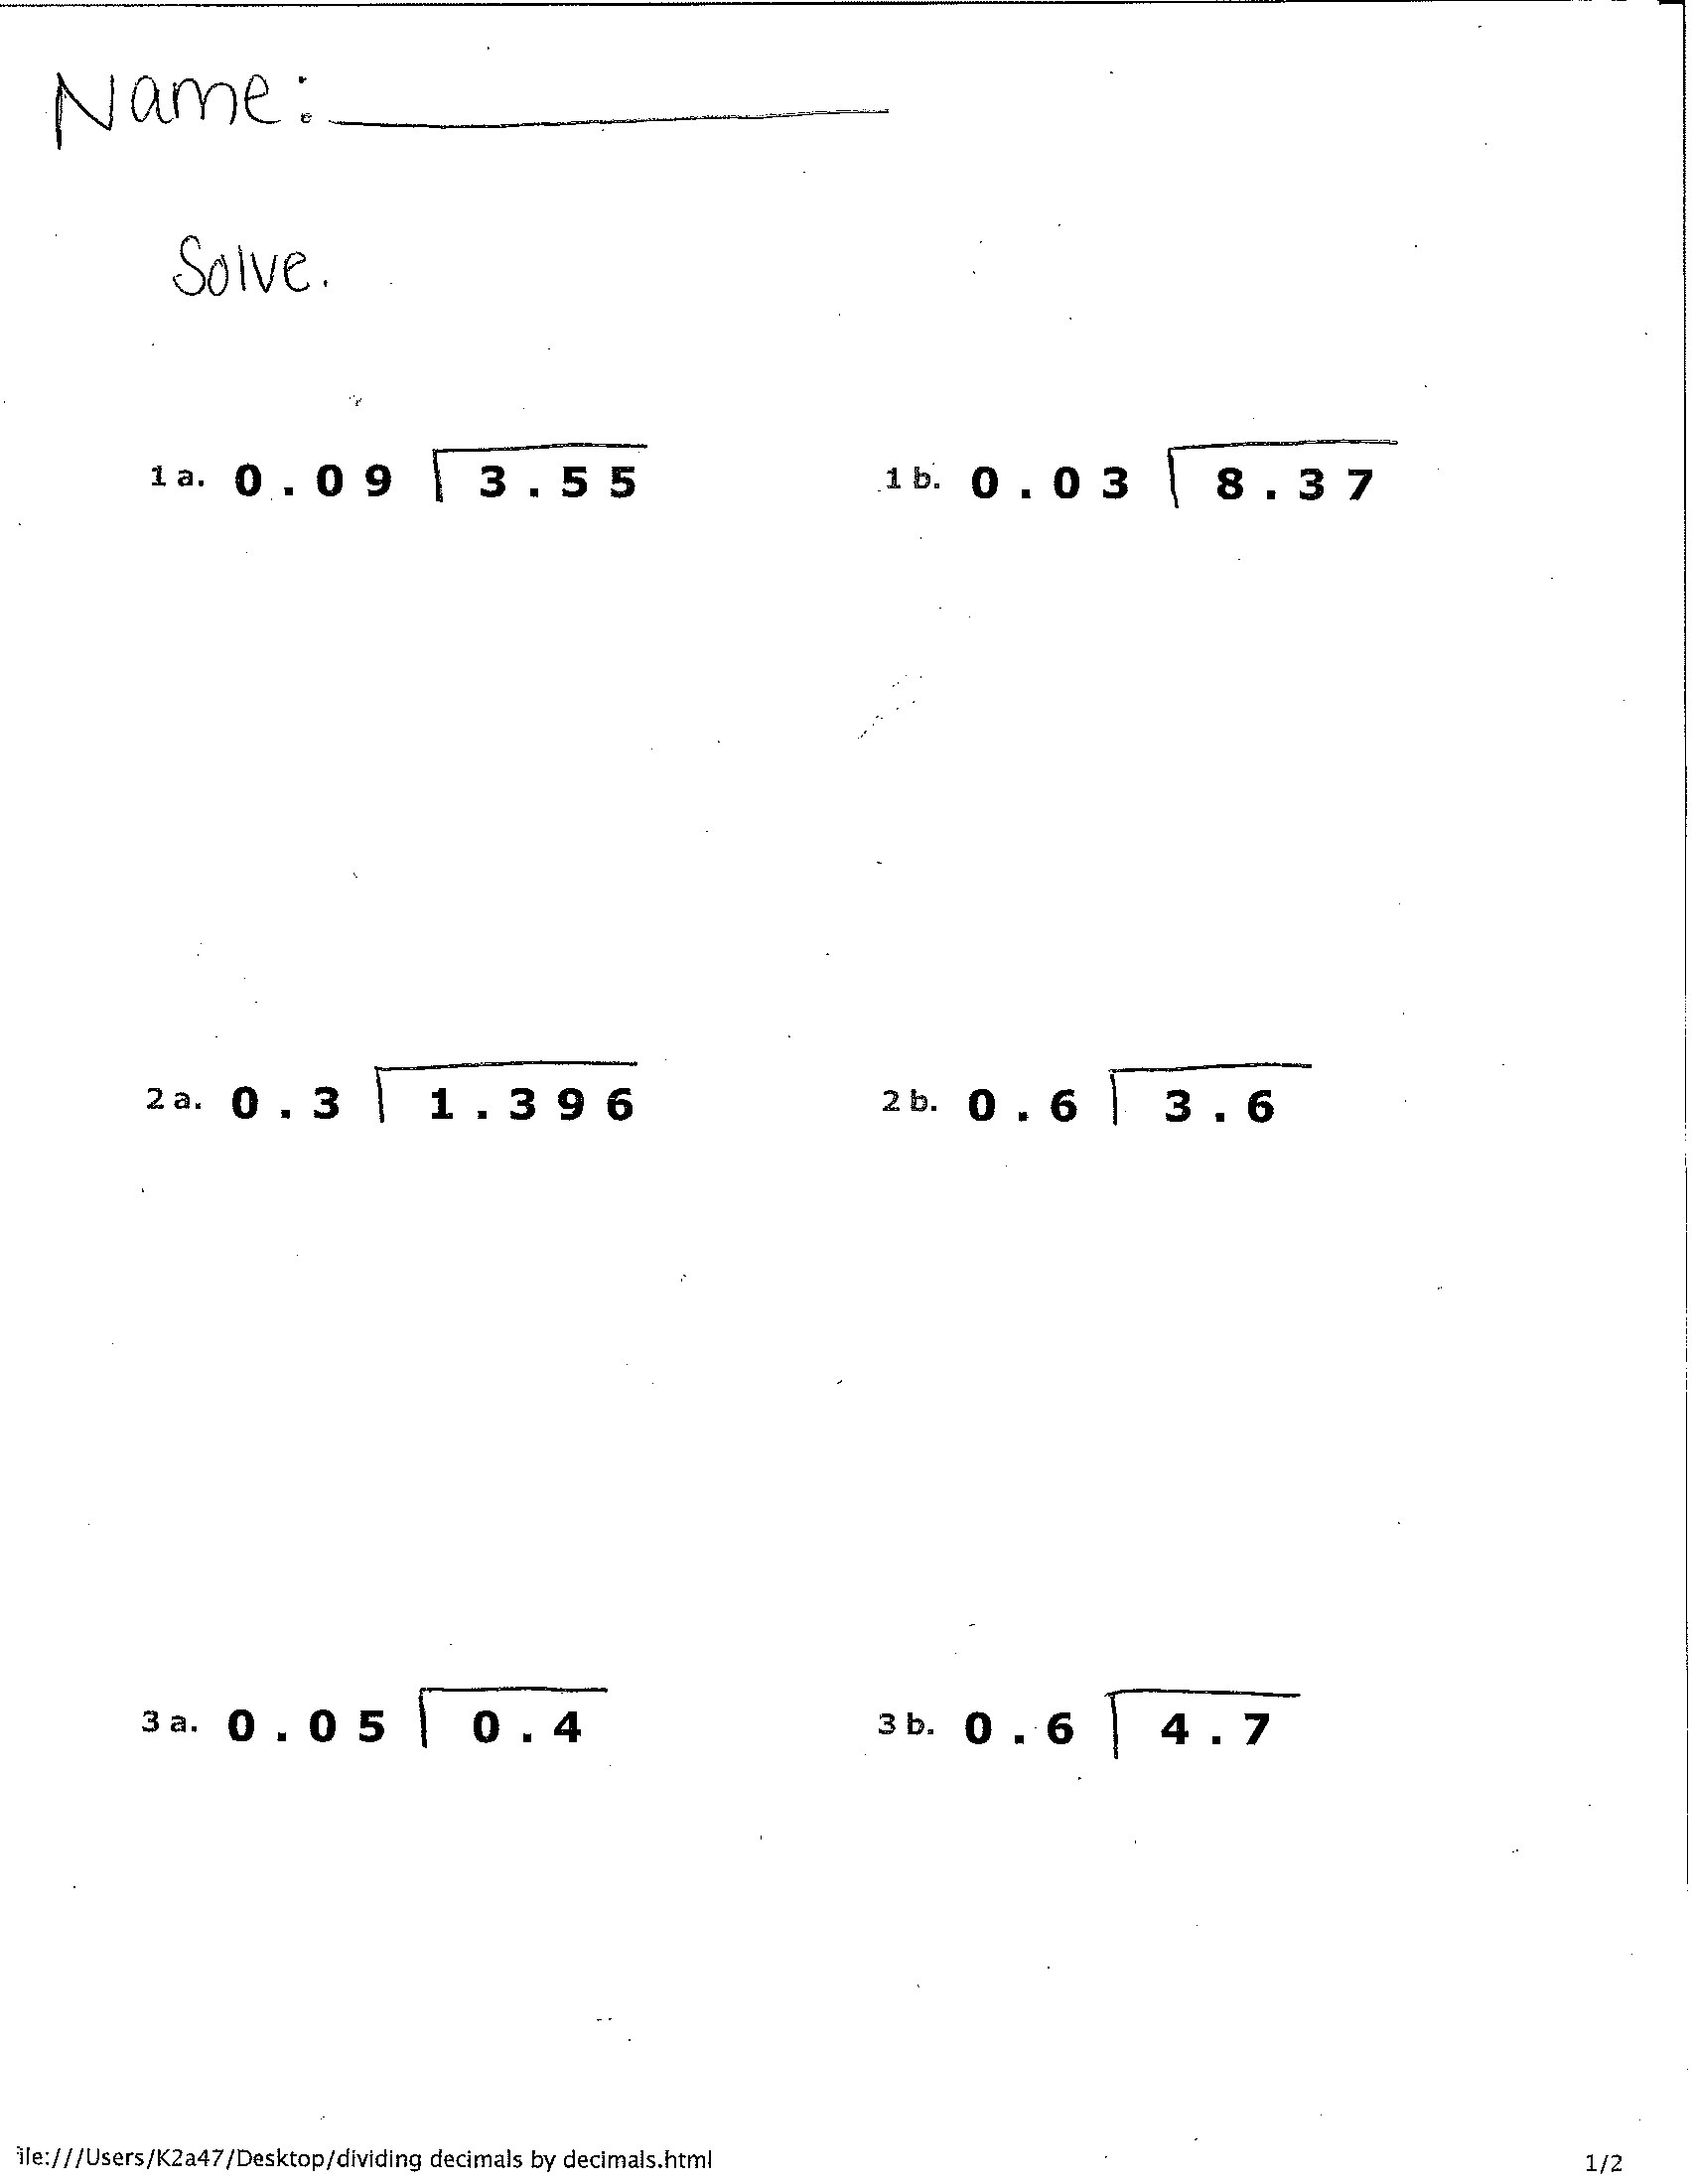 Worksheet Dividing Decimals homework help dividing decimals worksheet division problems with noconformity free various decimal places by a whole number the